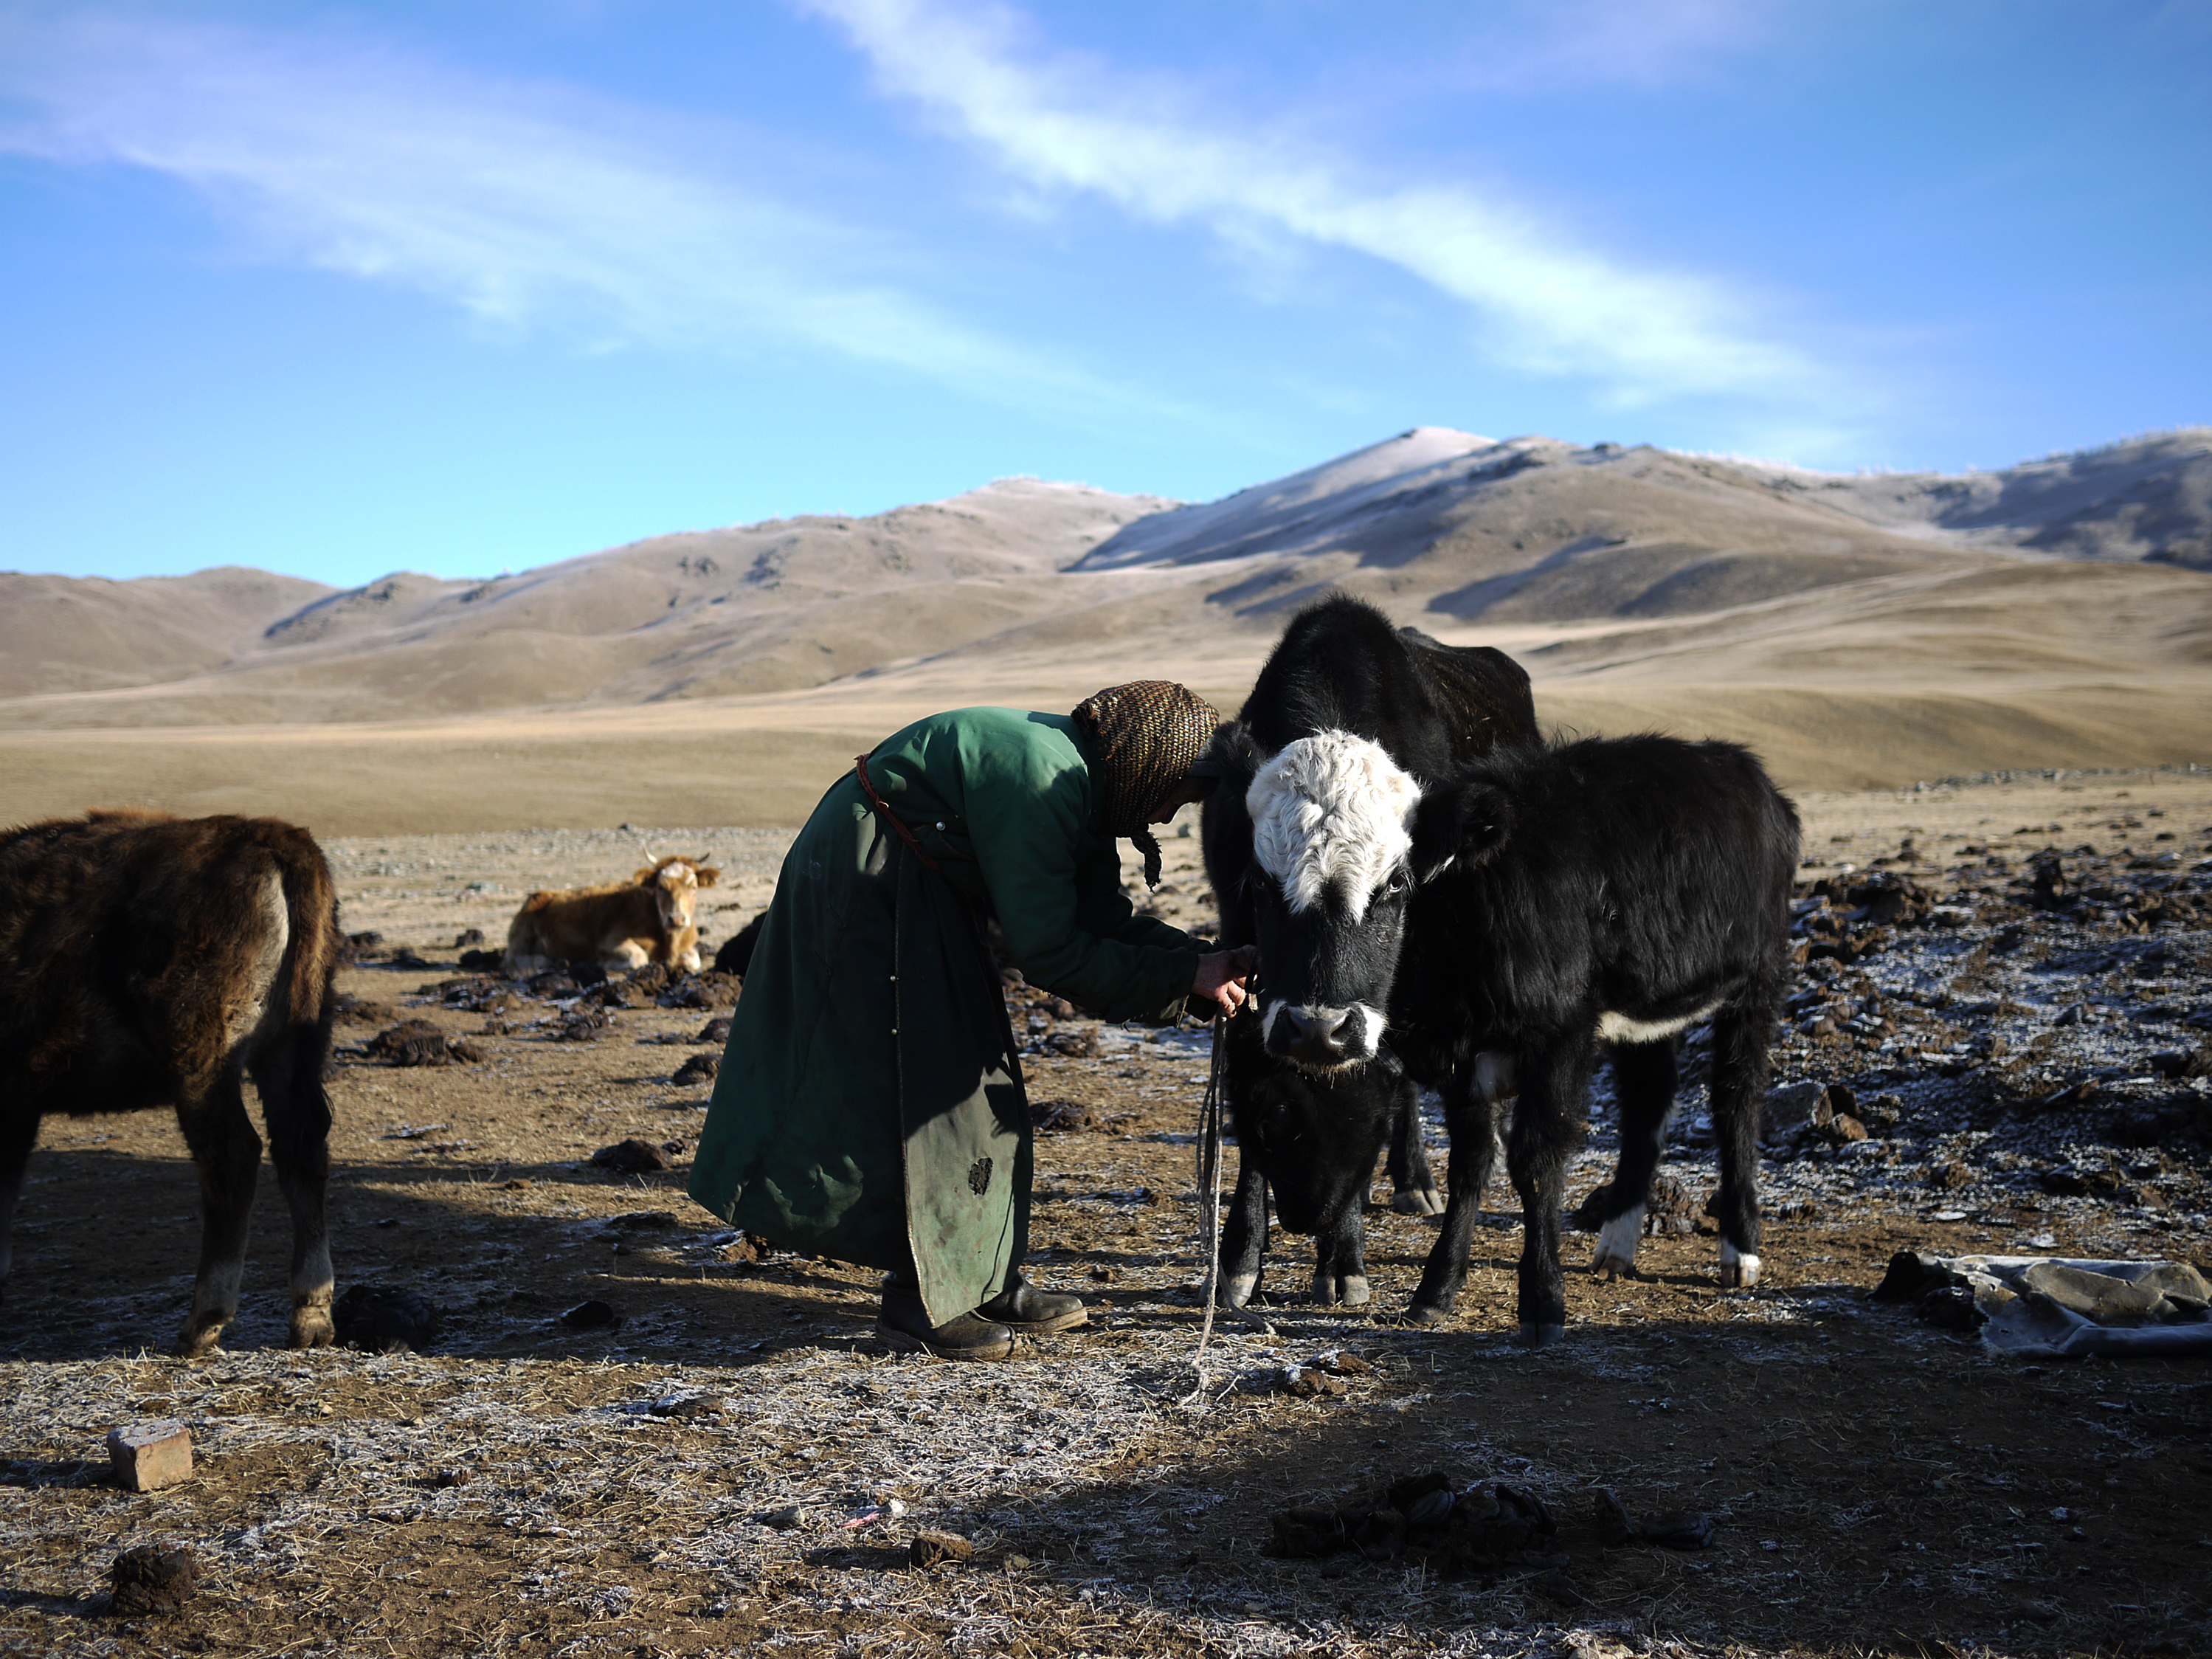 Lkhagvajav Bish unties one of her cows. Bish's herd has dwindled since she began raising cashmere goats. She used to have 20 goats; now she has 150. 'They're just taking over,' she says. Rob Schmitz/NPR.